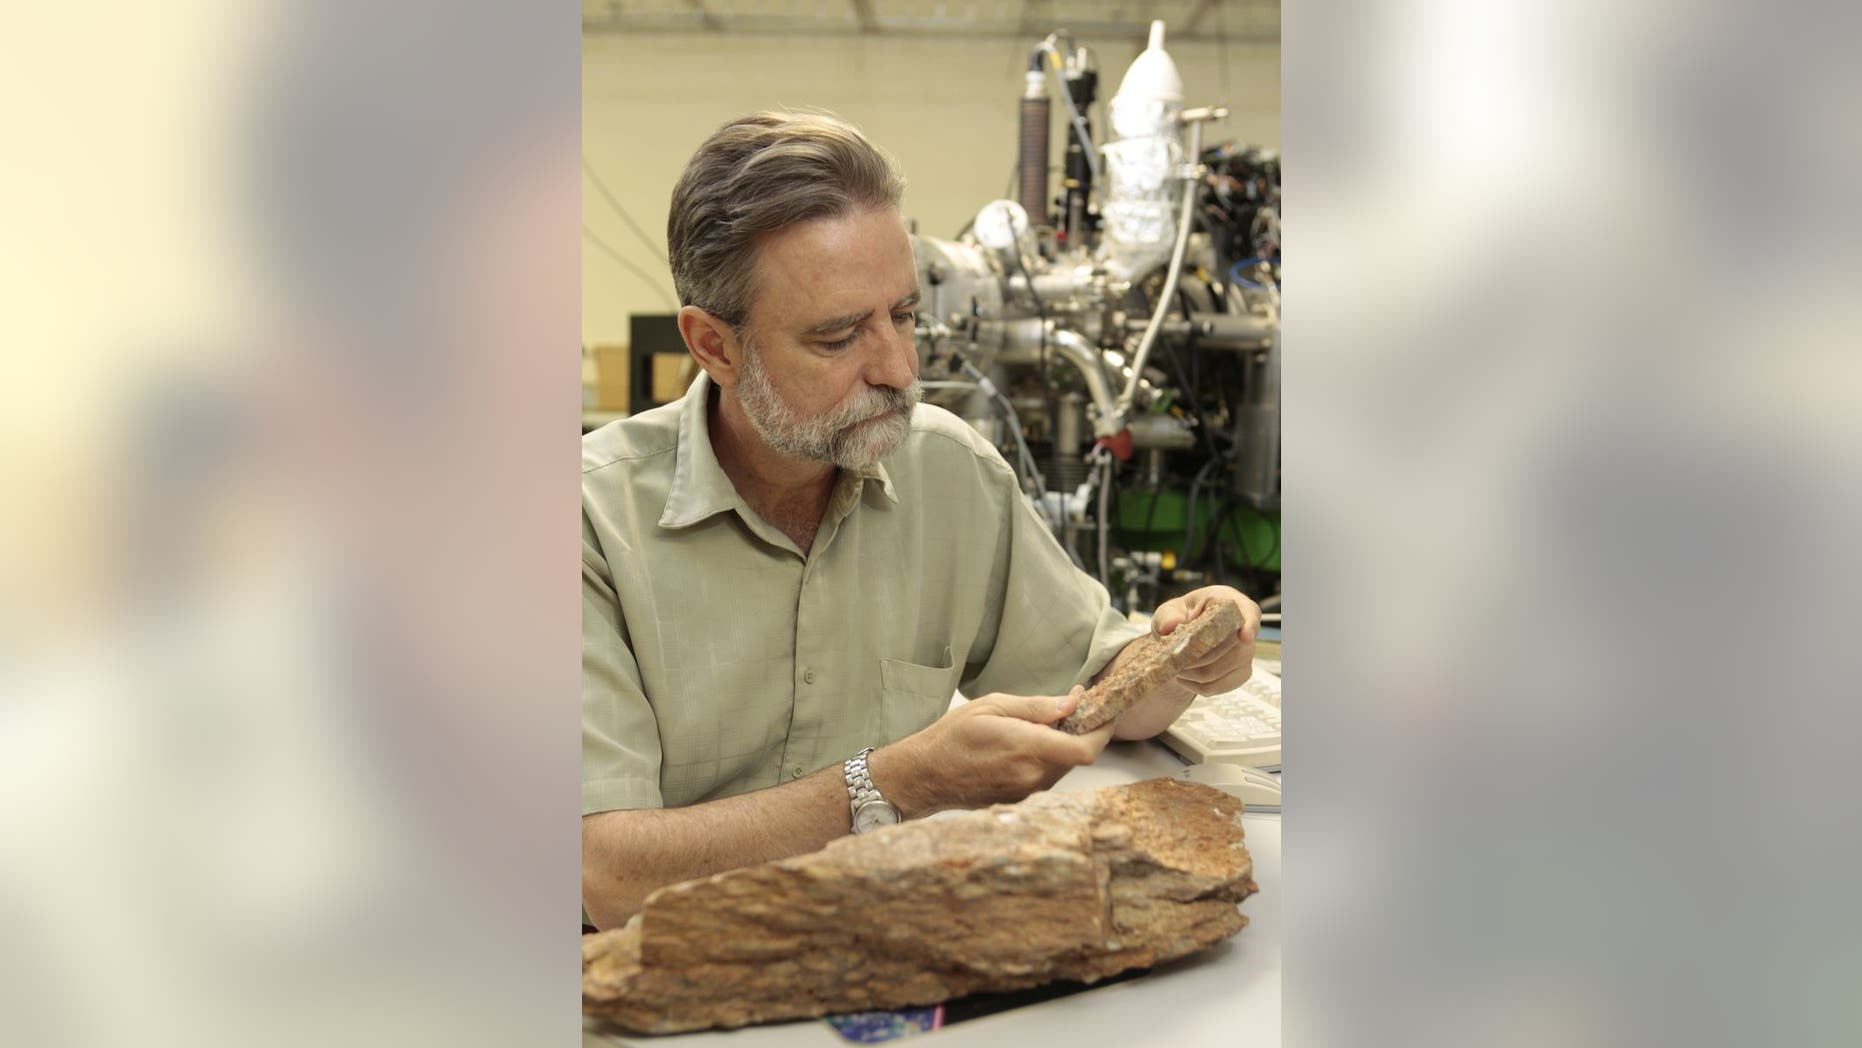 UCLA's Mark Harrison was one of the researchers whose study concluded that Earth was 300 million years older than previously thought. (Reed Hutchinson/UCLA)